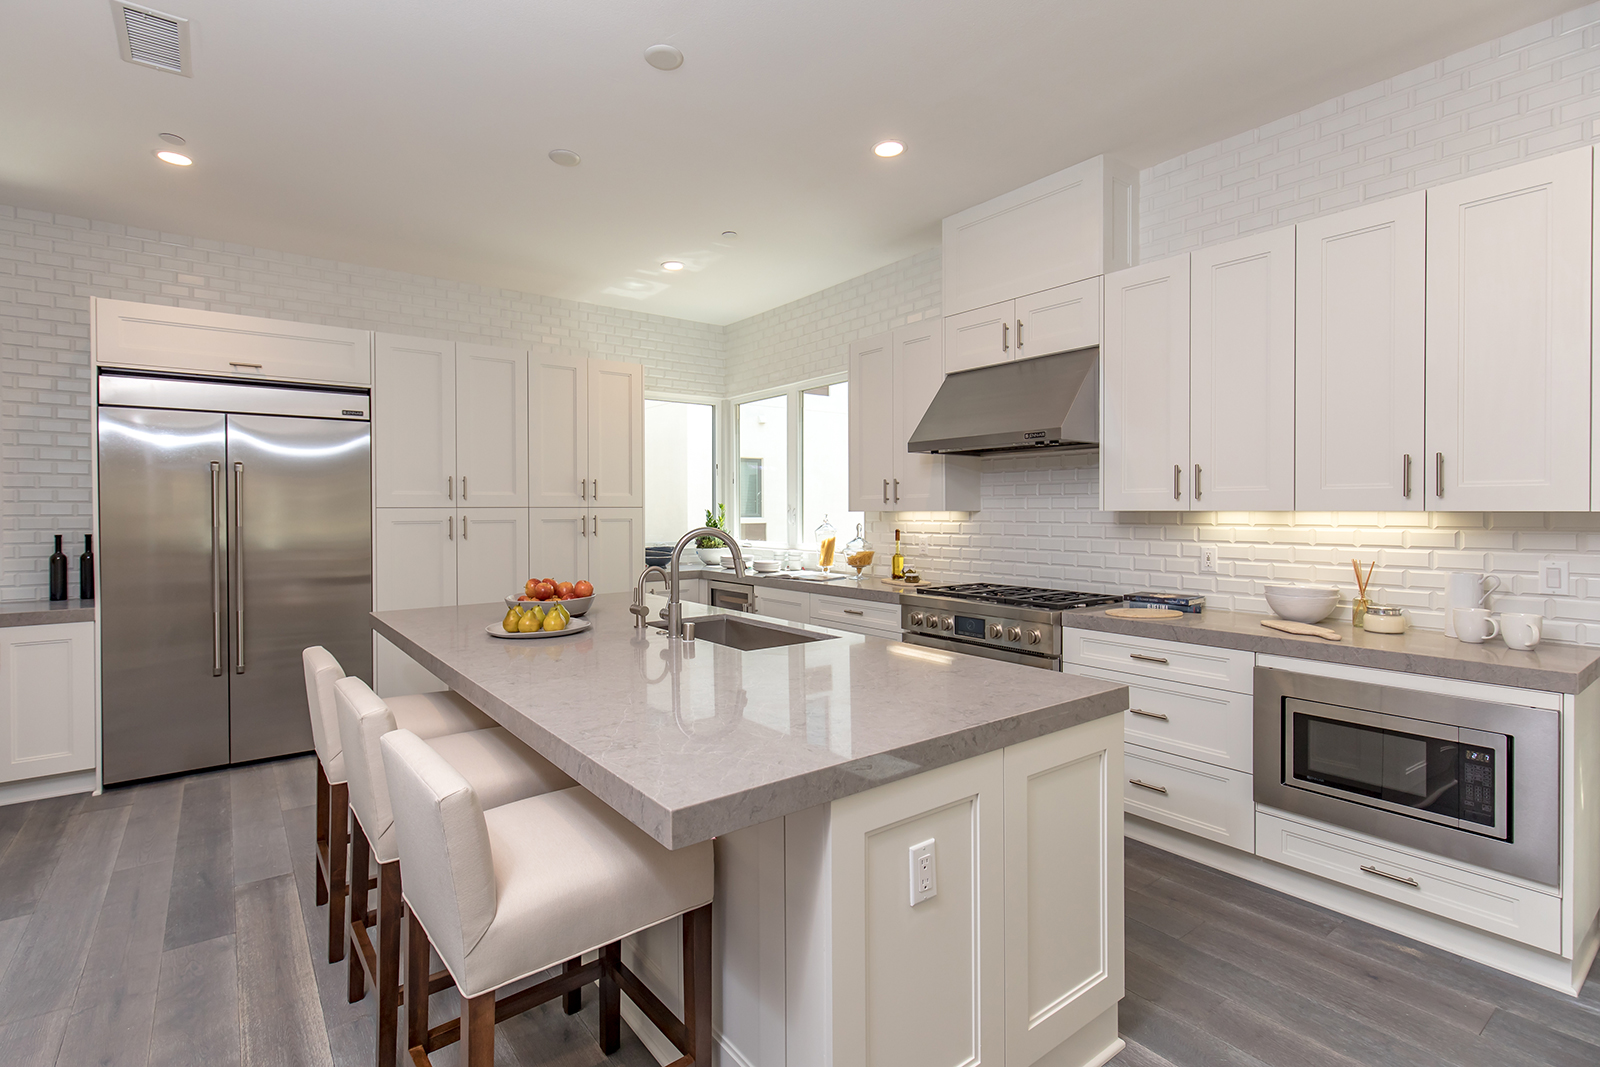 New Homes for Sale in LA - Kitchen